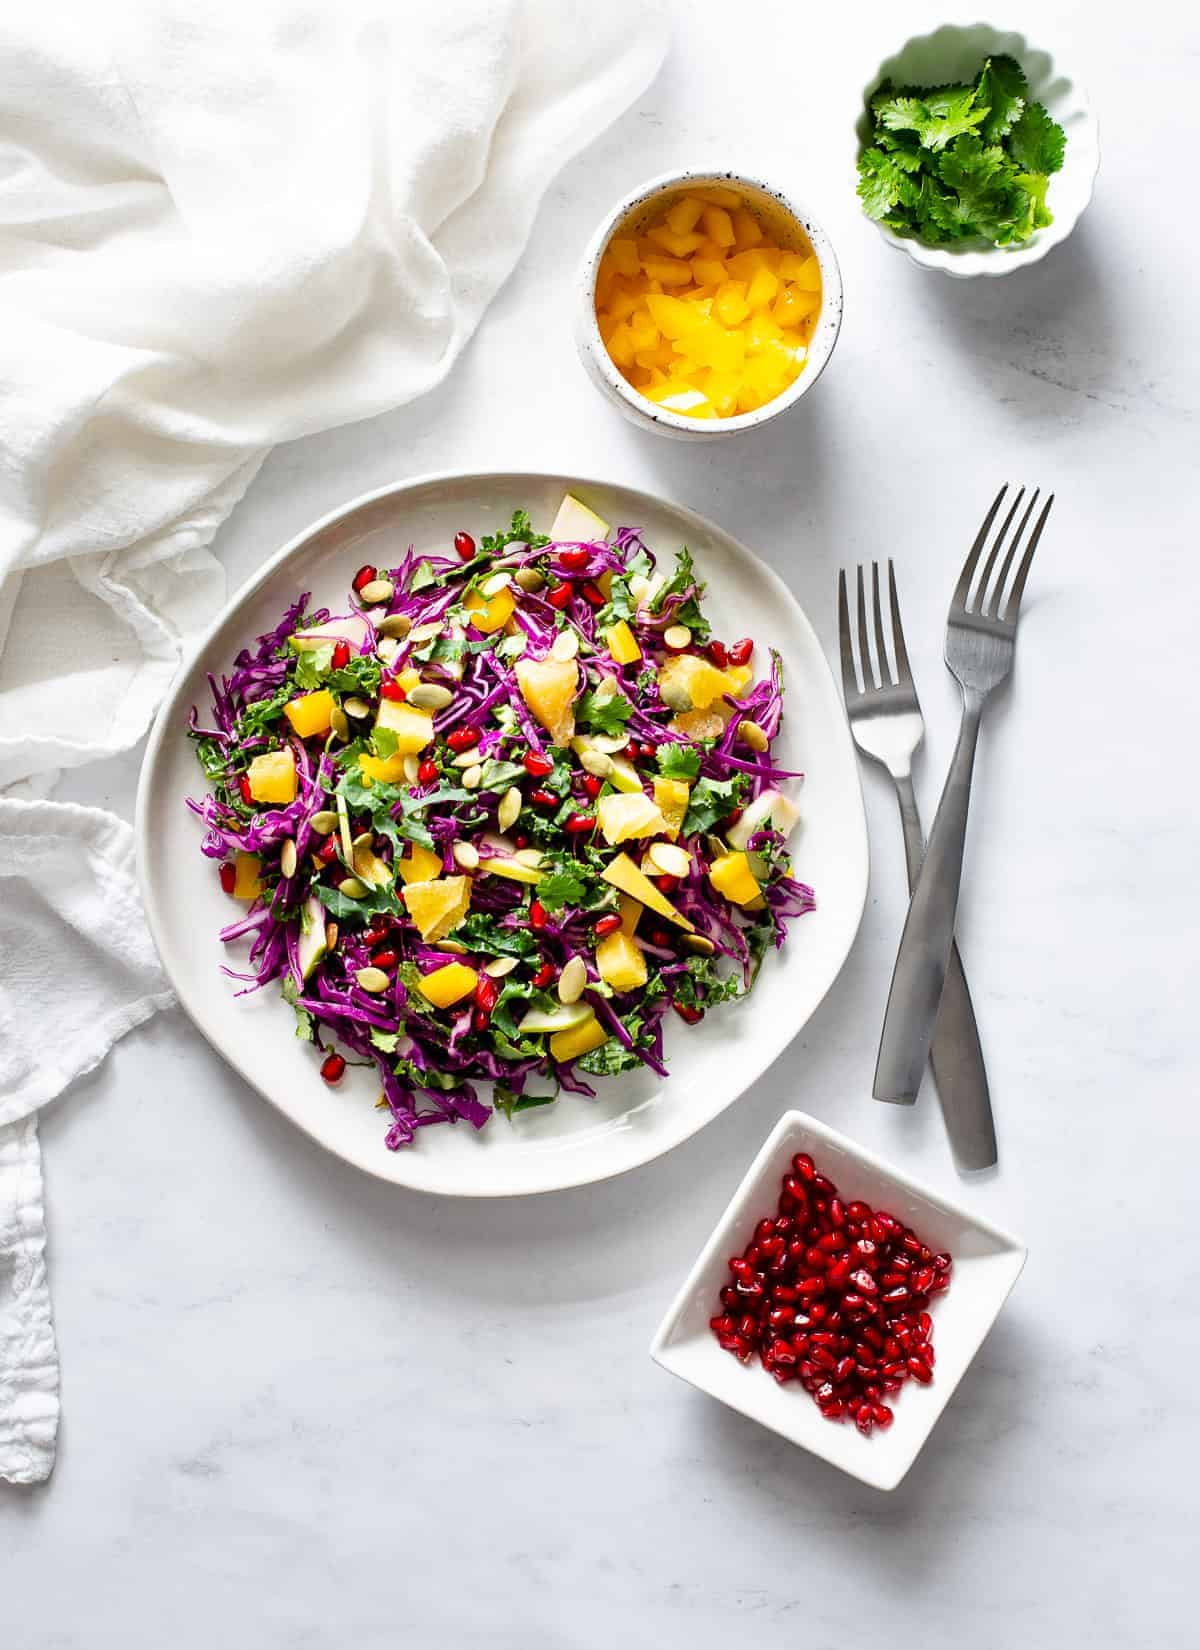 rainbow detox salad on a plate with ingredients in bowls